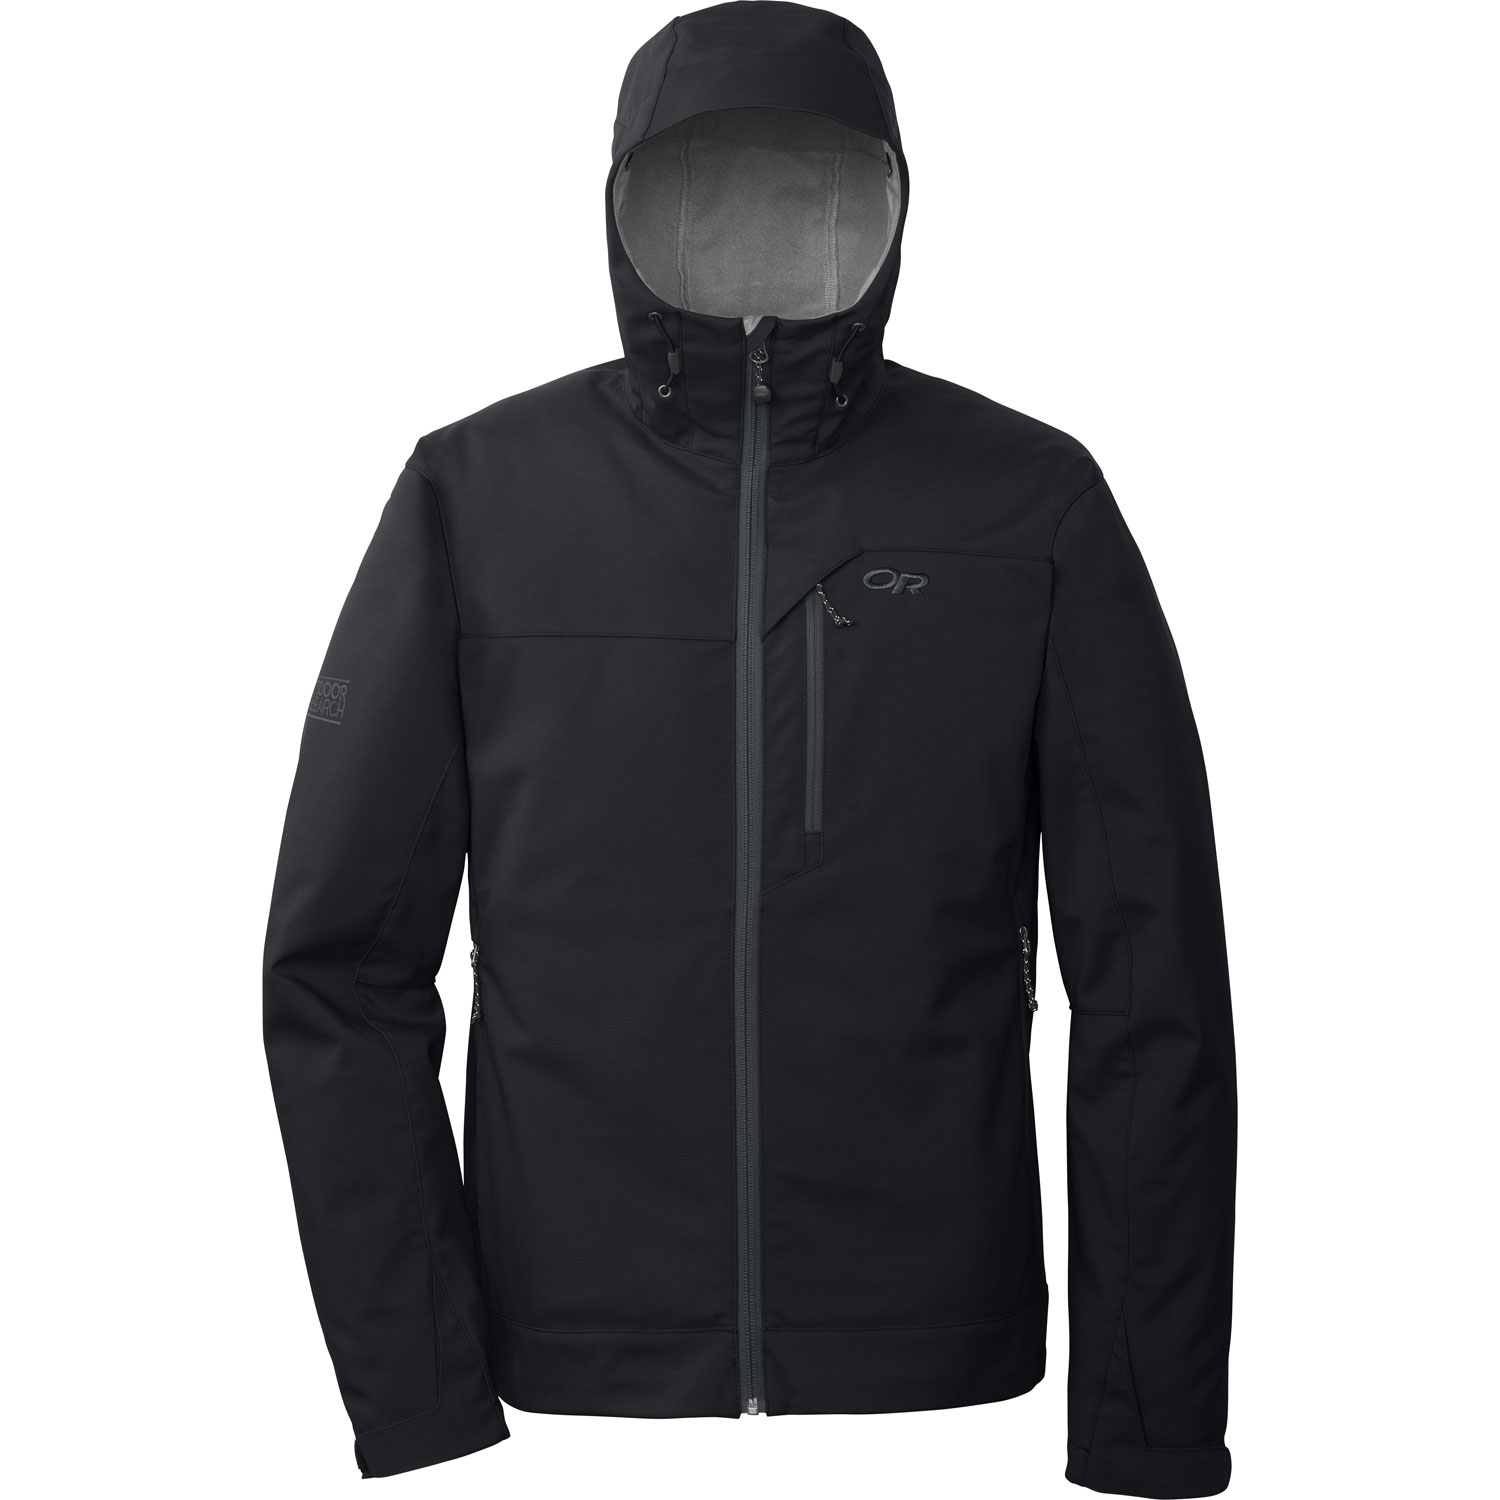 "Ski This water-resistant and breathable stretch soft shell provides unrestricted movement and versatility for warmer backcountry ski days and shoulder-season adventures. The adjustable hood provides additional weather protection.Key Features of the Outdoor Research Transfer Hoody Softshell Jacket: 100% Nylon soft shell face/ 100% Polyester brushed fleece interior Water resistant Breathable Fleece interior Brushed Tricot collar Adjustable hood Two zippered hand pockets Chest pocket Hook/ loop cuff closures Drawcord hem (L) 22.2 oz/ 630g Standard Fit Center Back Length: 29""/ 74cm - $108.95"